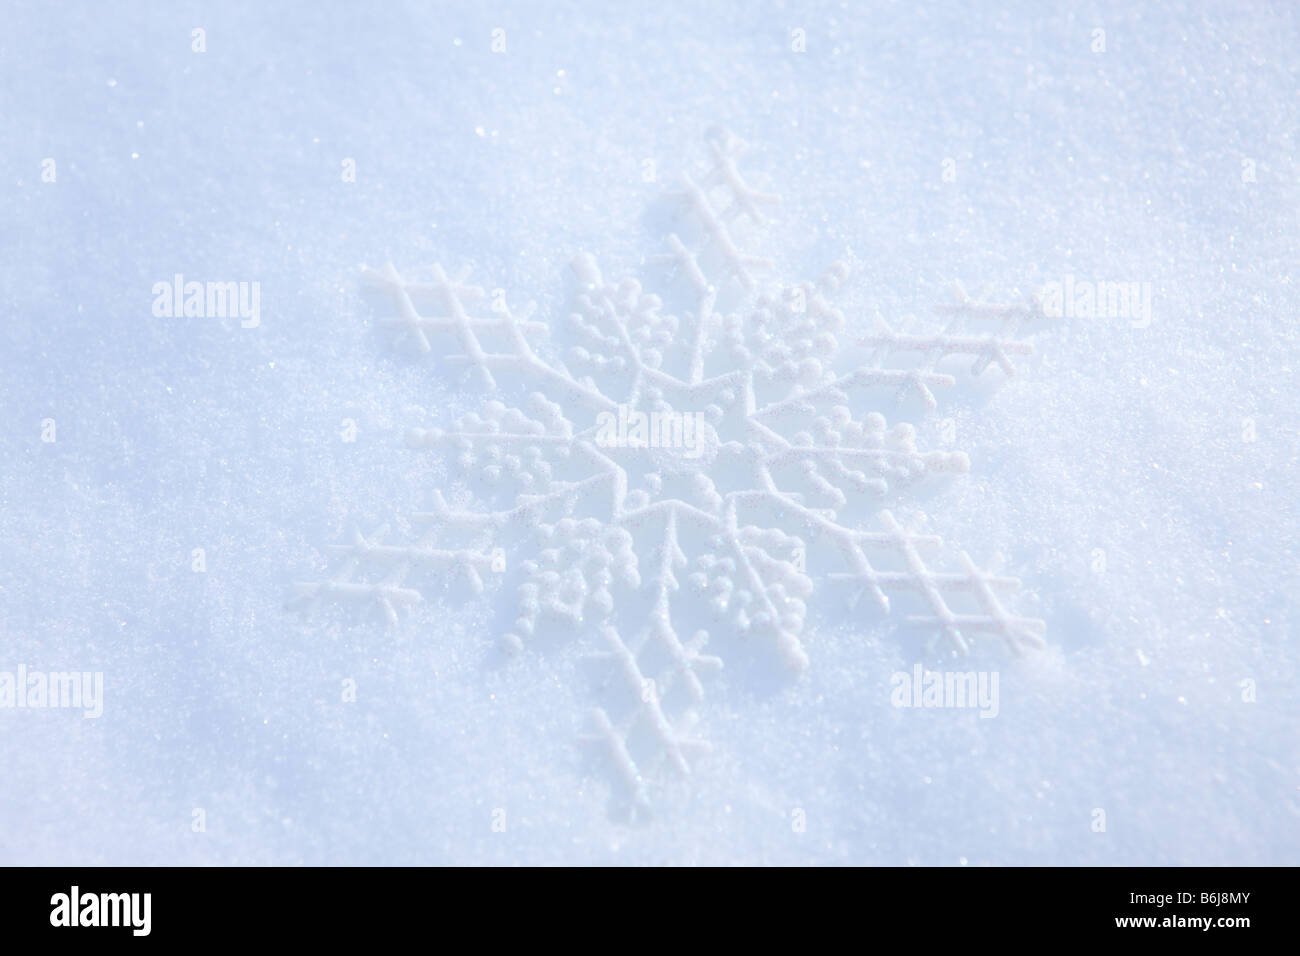 Snowflake ornament laying in fresh white winter snow - Stock Image